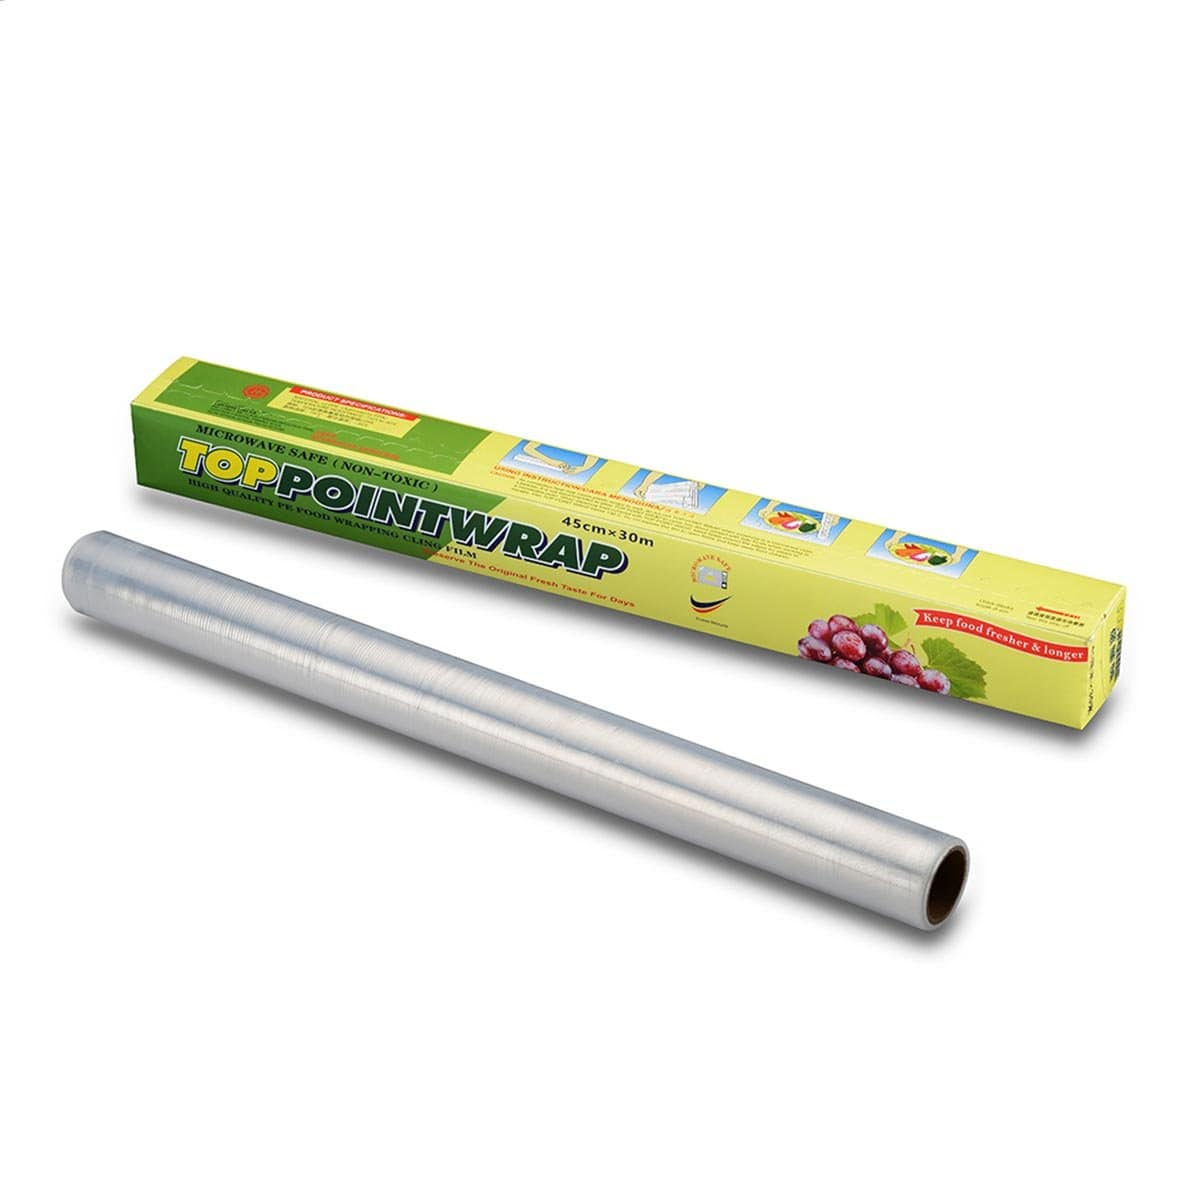 Top Point Dispenser Plastic Wrap (45cm x 30m)